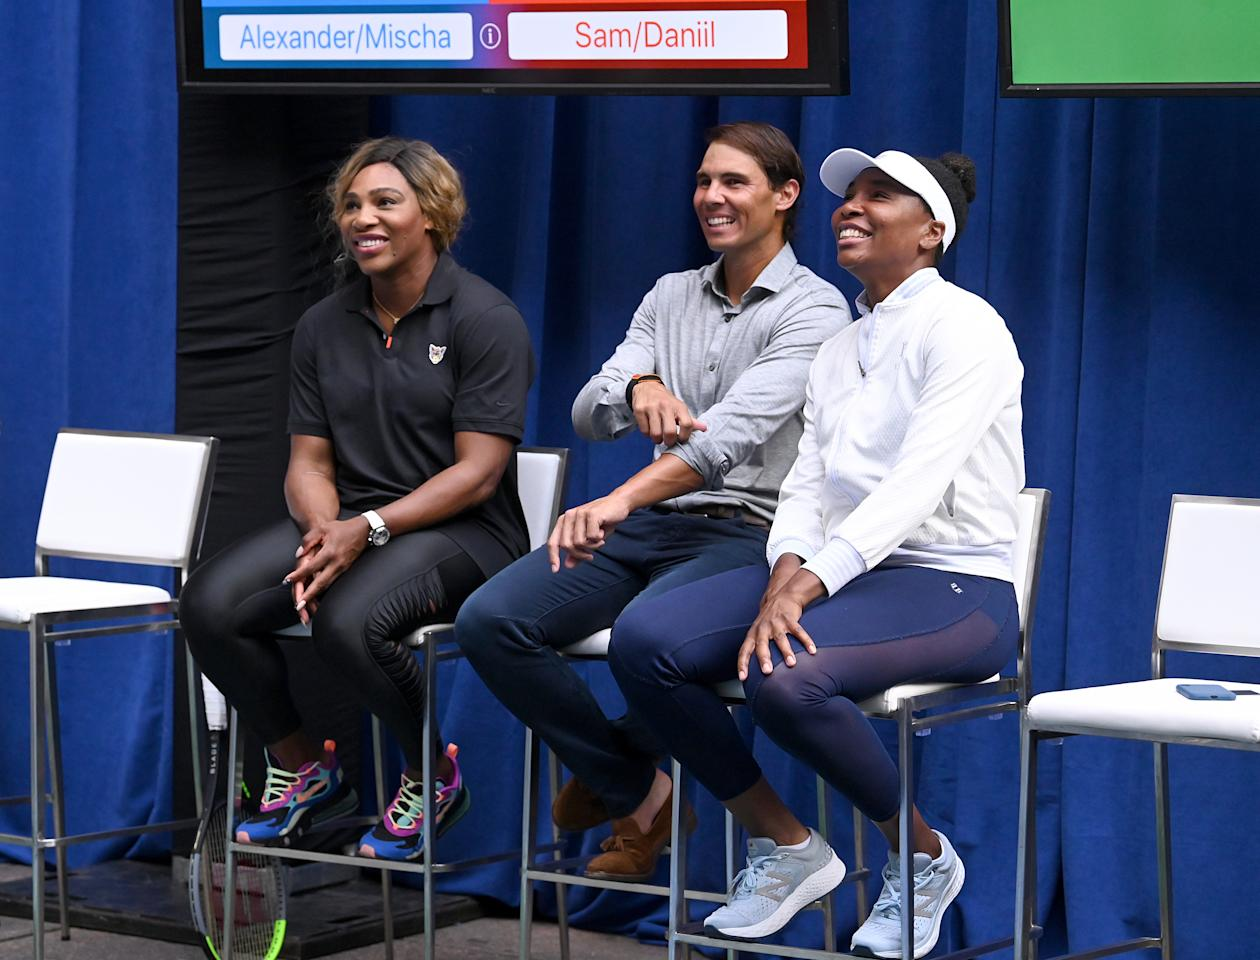 Ahead of their face-off, Serena and Venus chatted with Nadal.